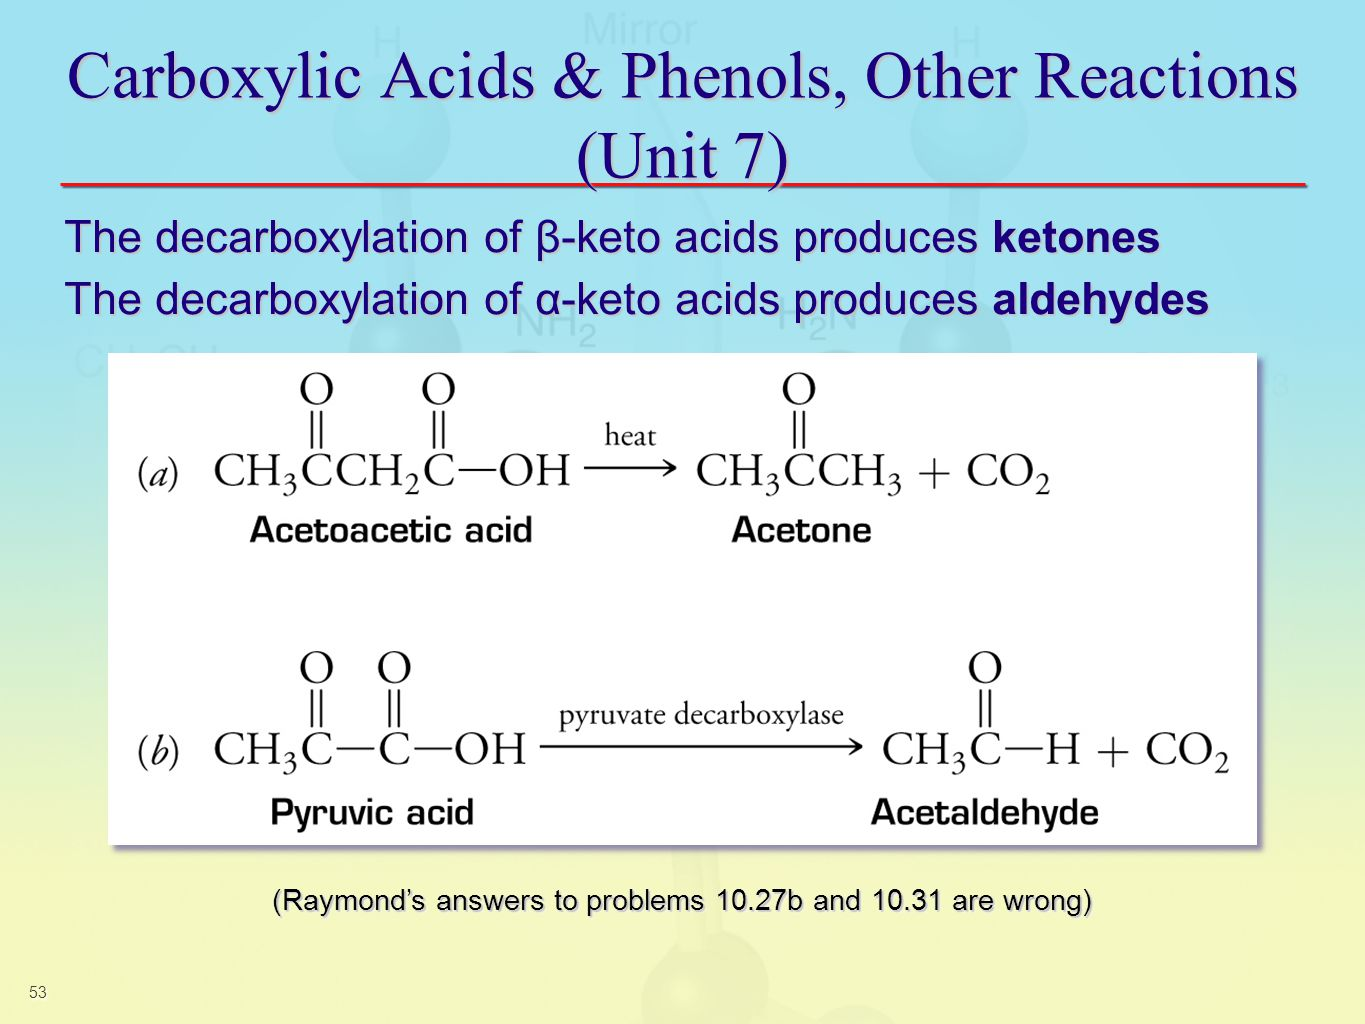 carboxylic acids Aromatic carboxylic acids benzoic acid, the sodium salt of benzoic acid is used as a food preservative , salicylic acid – a beta hydroxy type found in many skin care products dicarboxylic acids containing two carboxyl groups examples adipic acid the monomer used to produce nylon and.